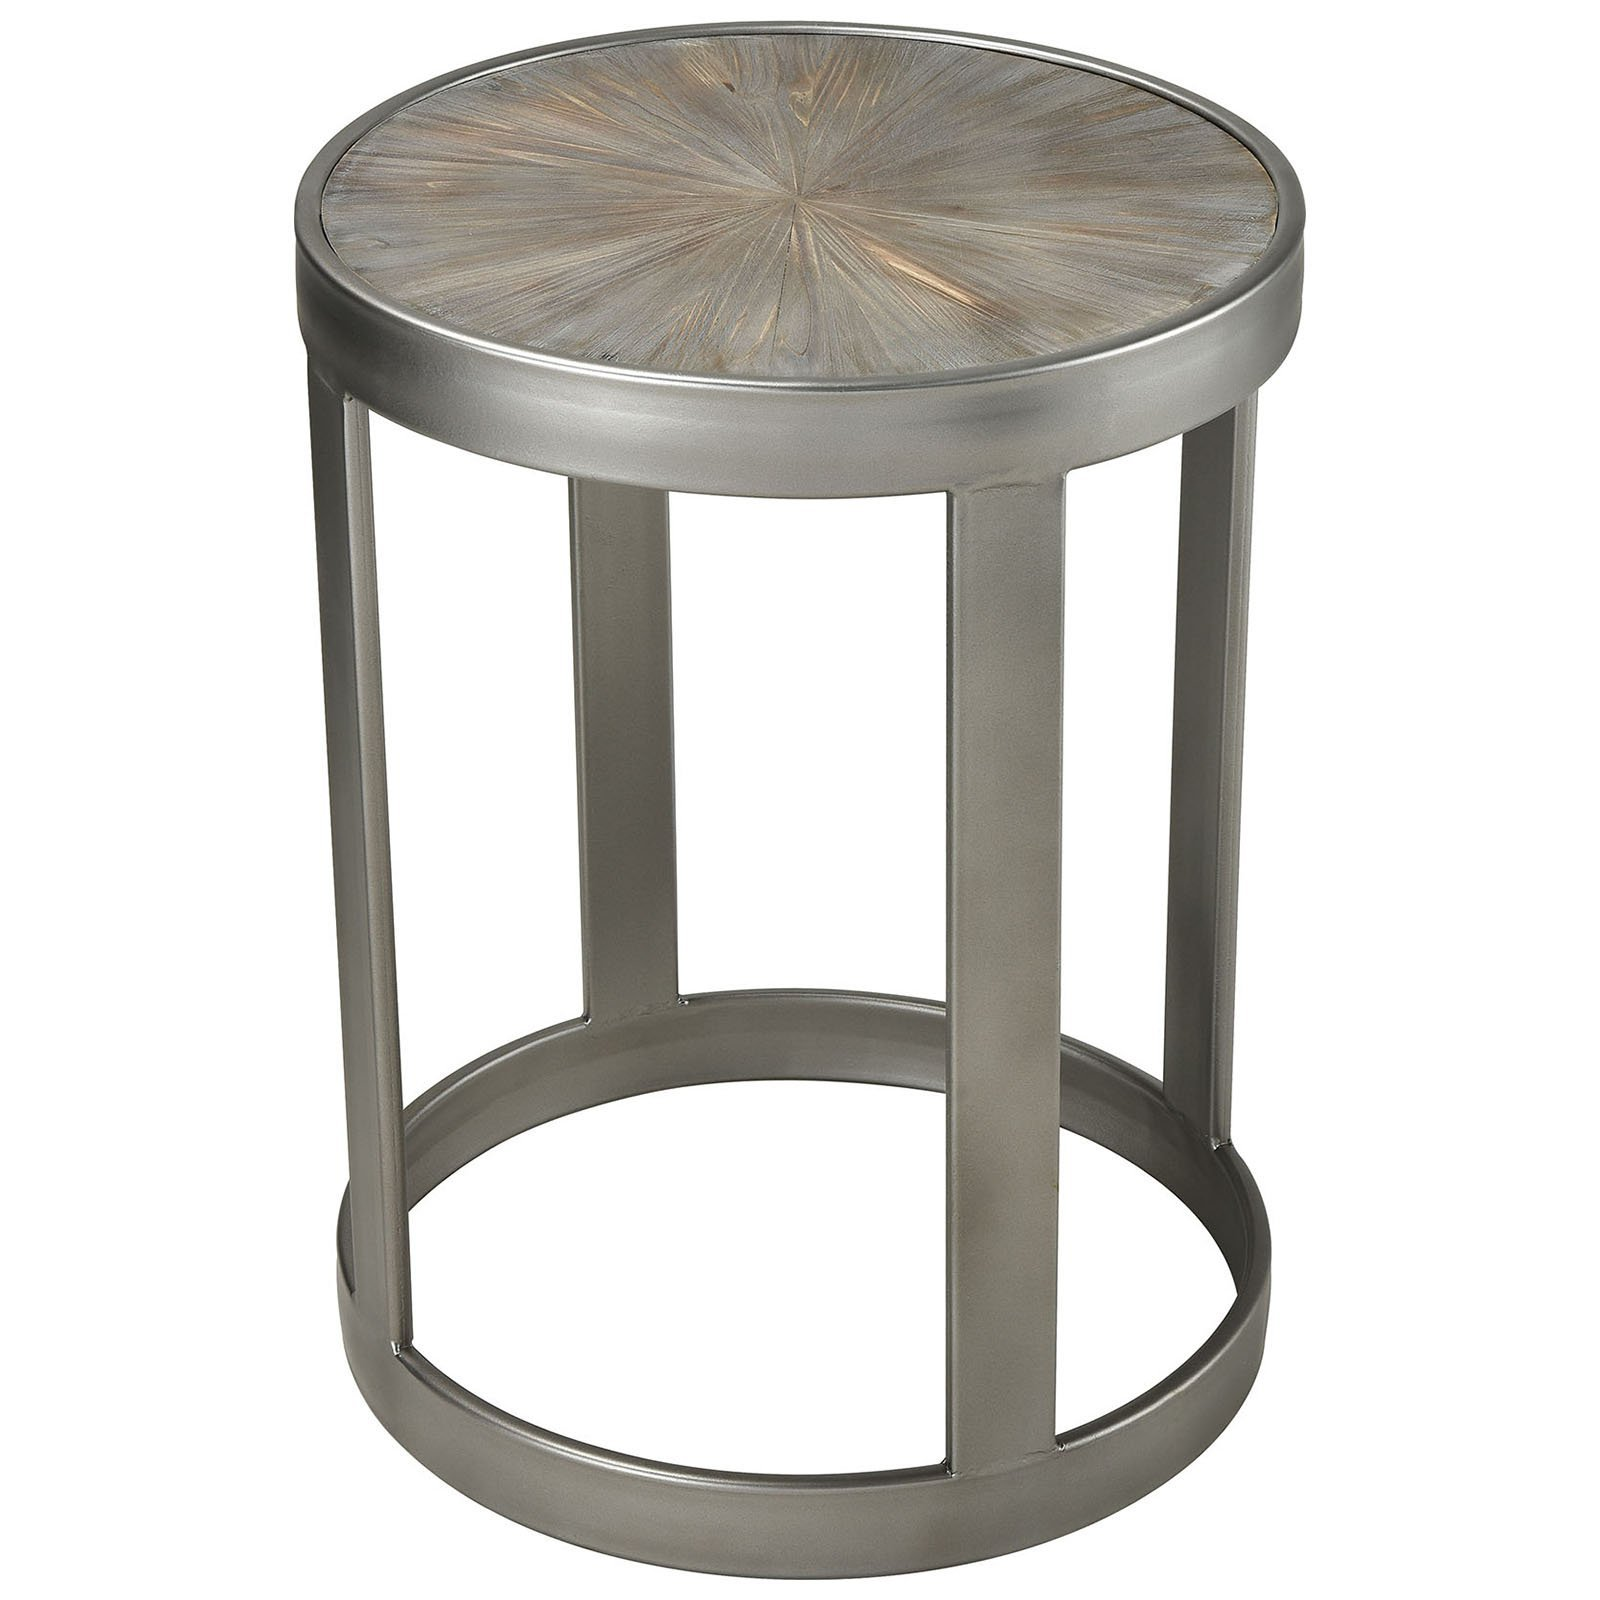 gravitas farmhouse accent tables salvaged grey wood fratantoni table with pewter metal and fir the room furniture black mirrored bedside small red lamp gray trestle dining pub